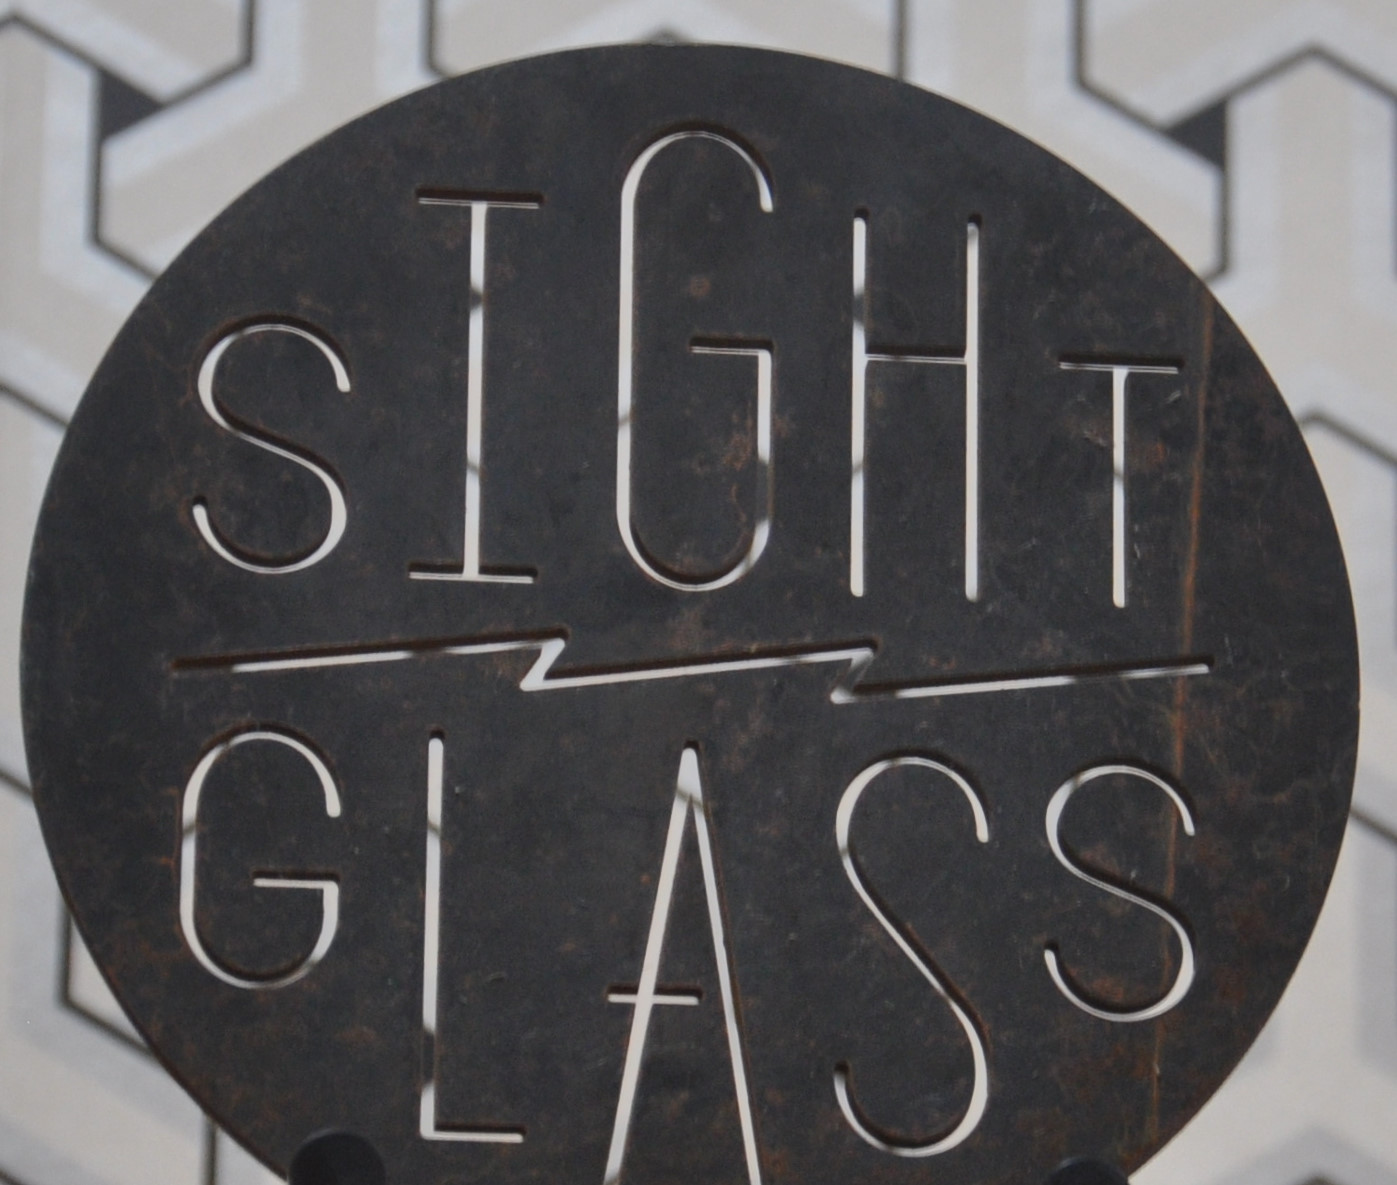 Details of the Sightglass logo.